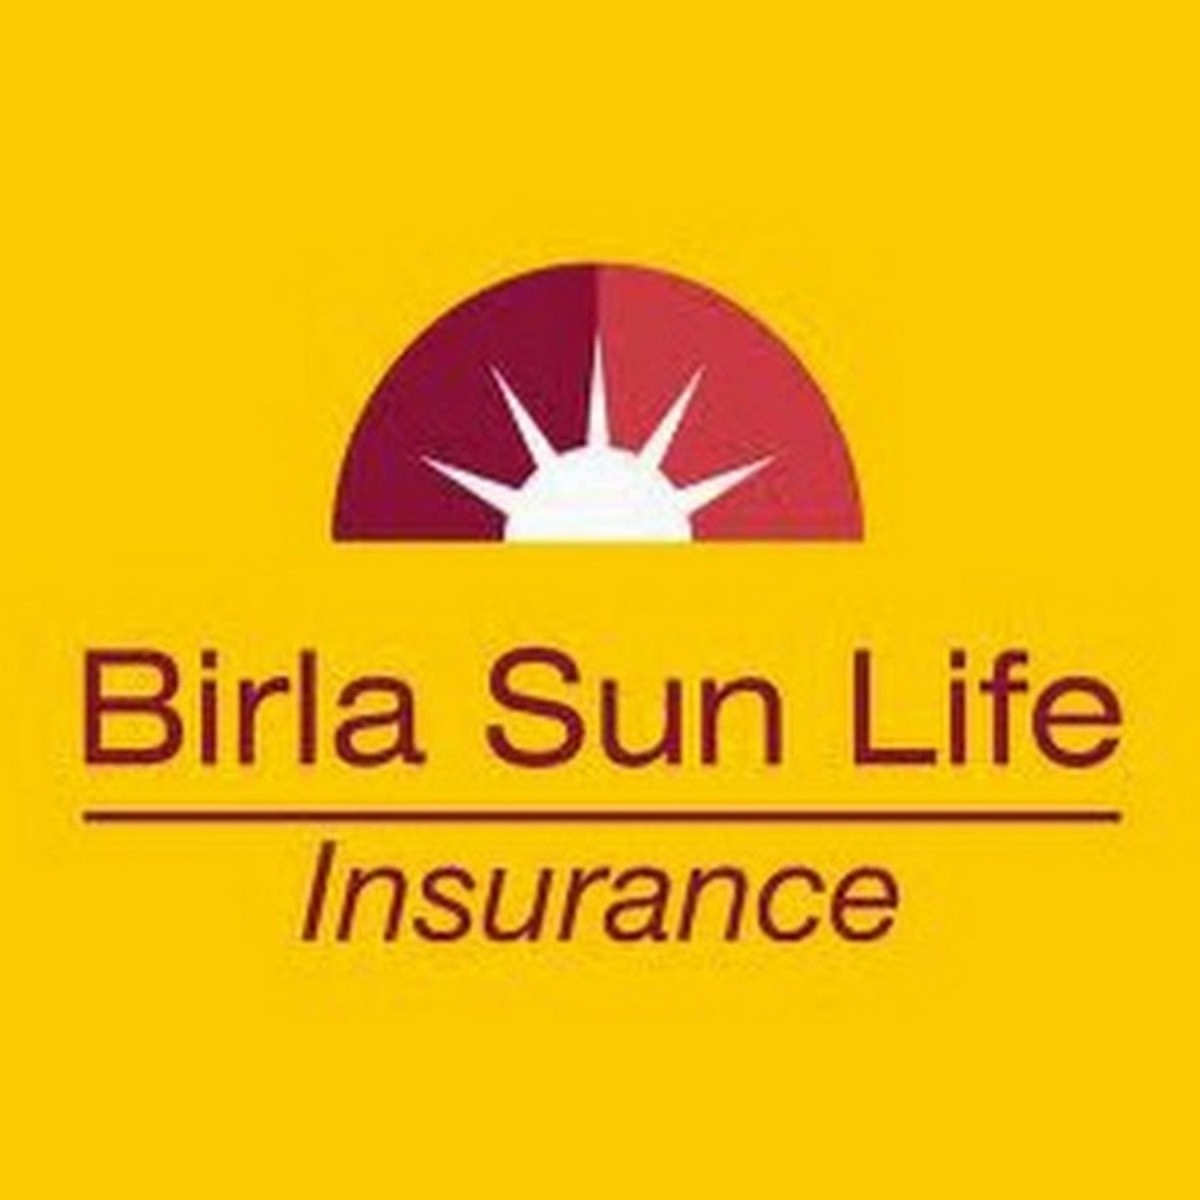 Marketing Mix Of Birla Sun Life Insurance